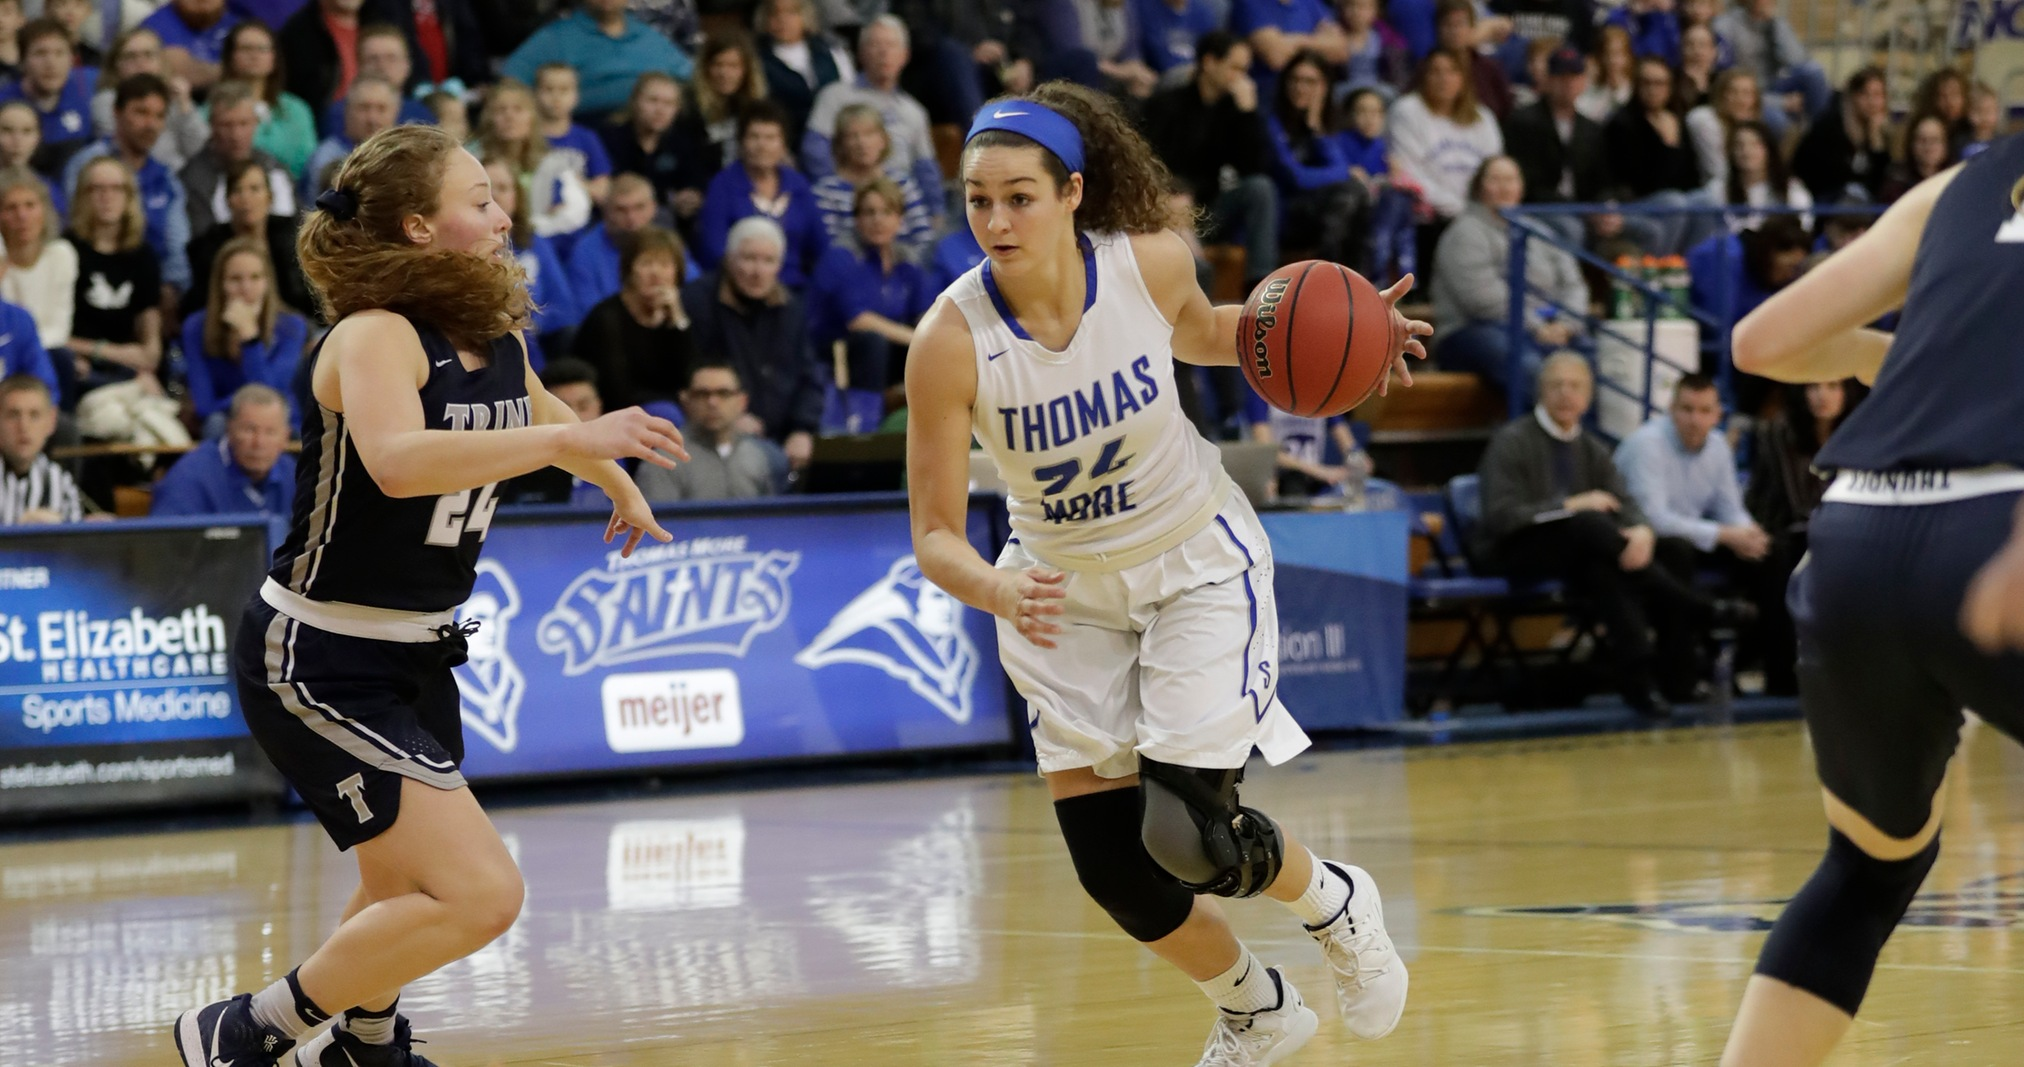 No. 1 Thomas More Rallies to Defeat No. 5 Trine in NCAA Second Round